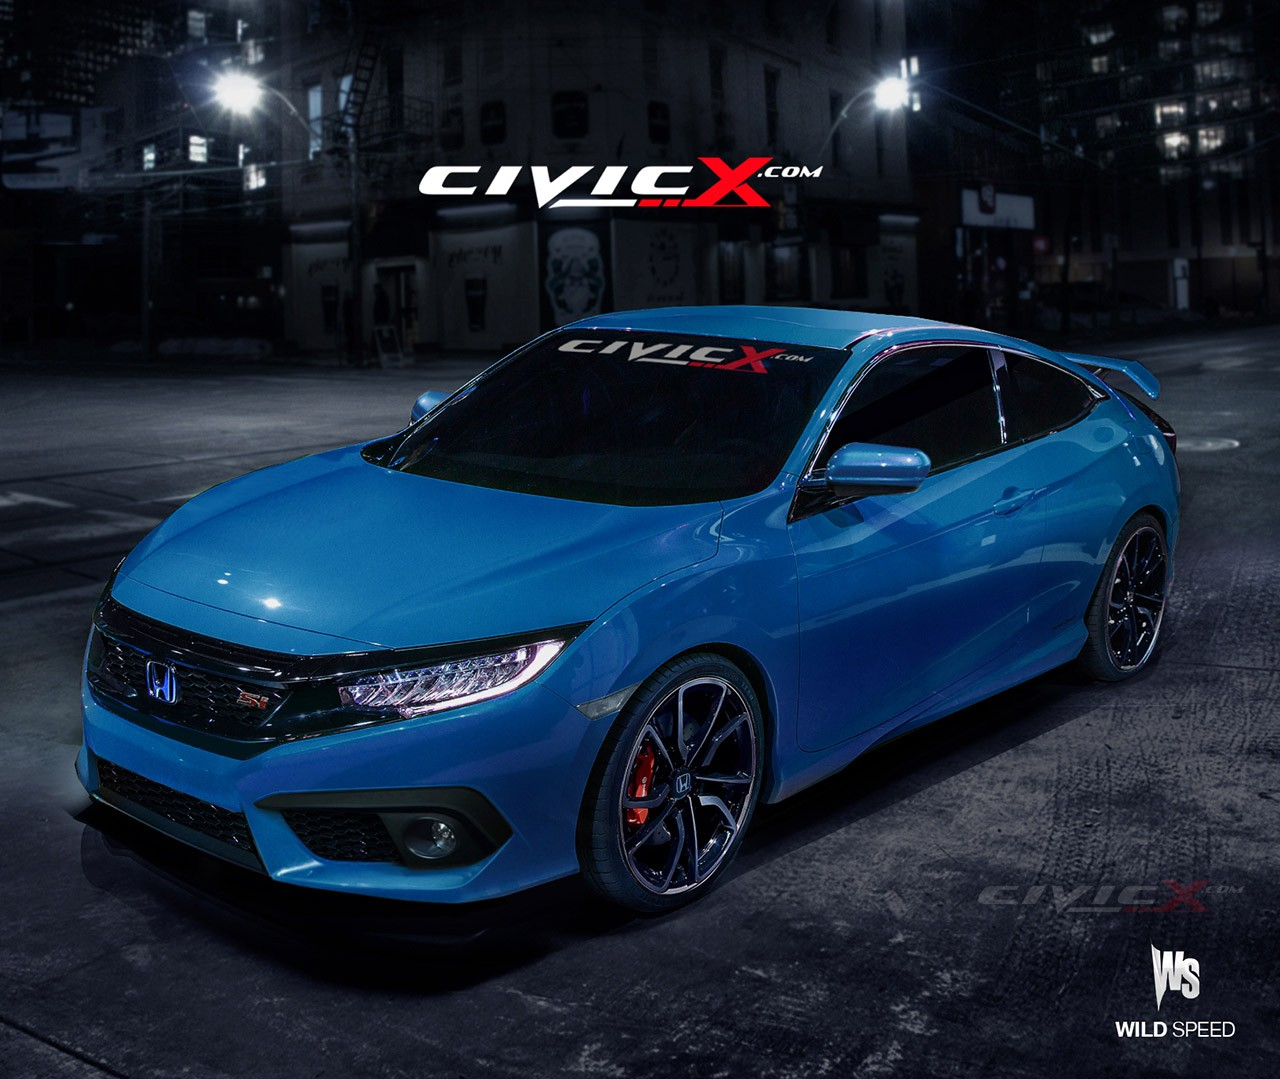 2016 Civic Si Coupe Accurately Rendered. But Is There a Turbo Under the Hood? - autoevolution